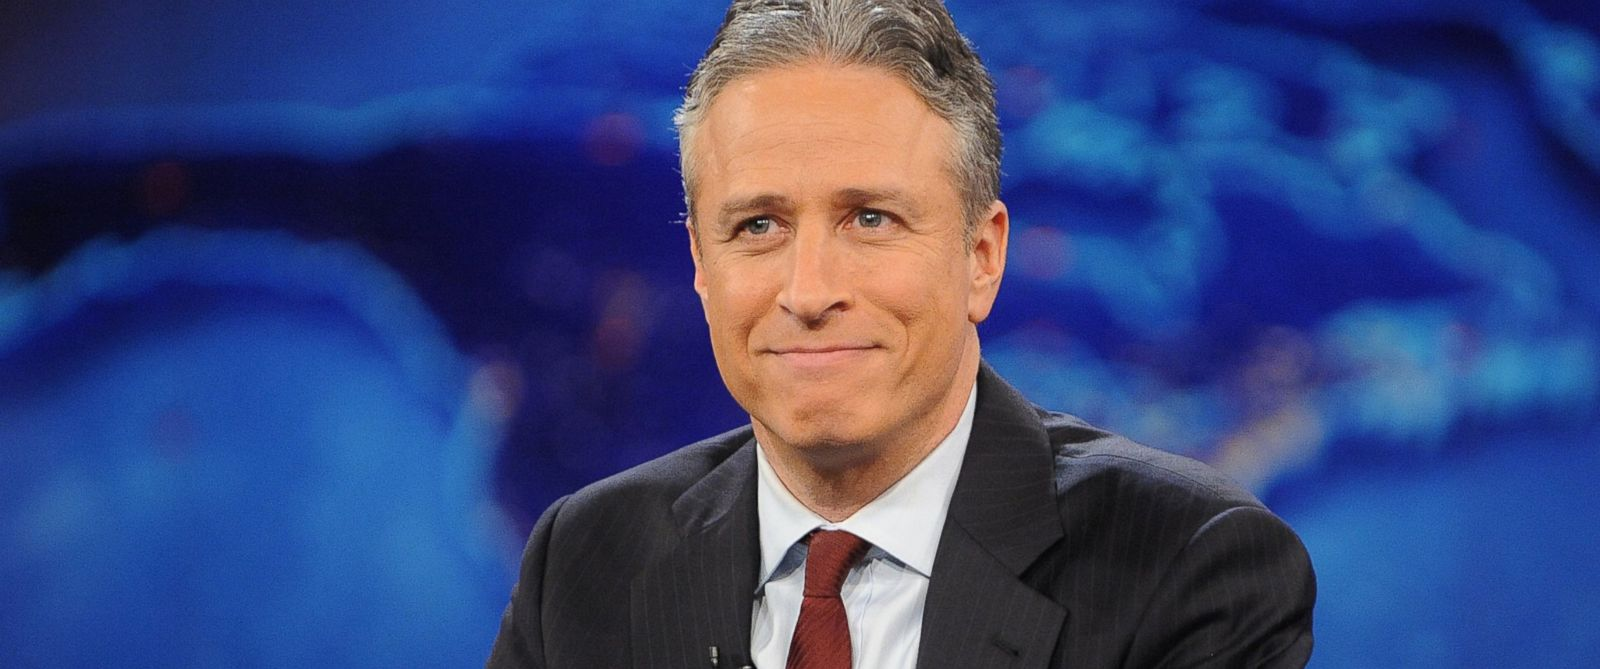 """PHOTO: Jon Stewart during a taping of """"The Daily Show with Jon Stewart"""" in New York, Nov. 30, 2011."""